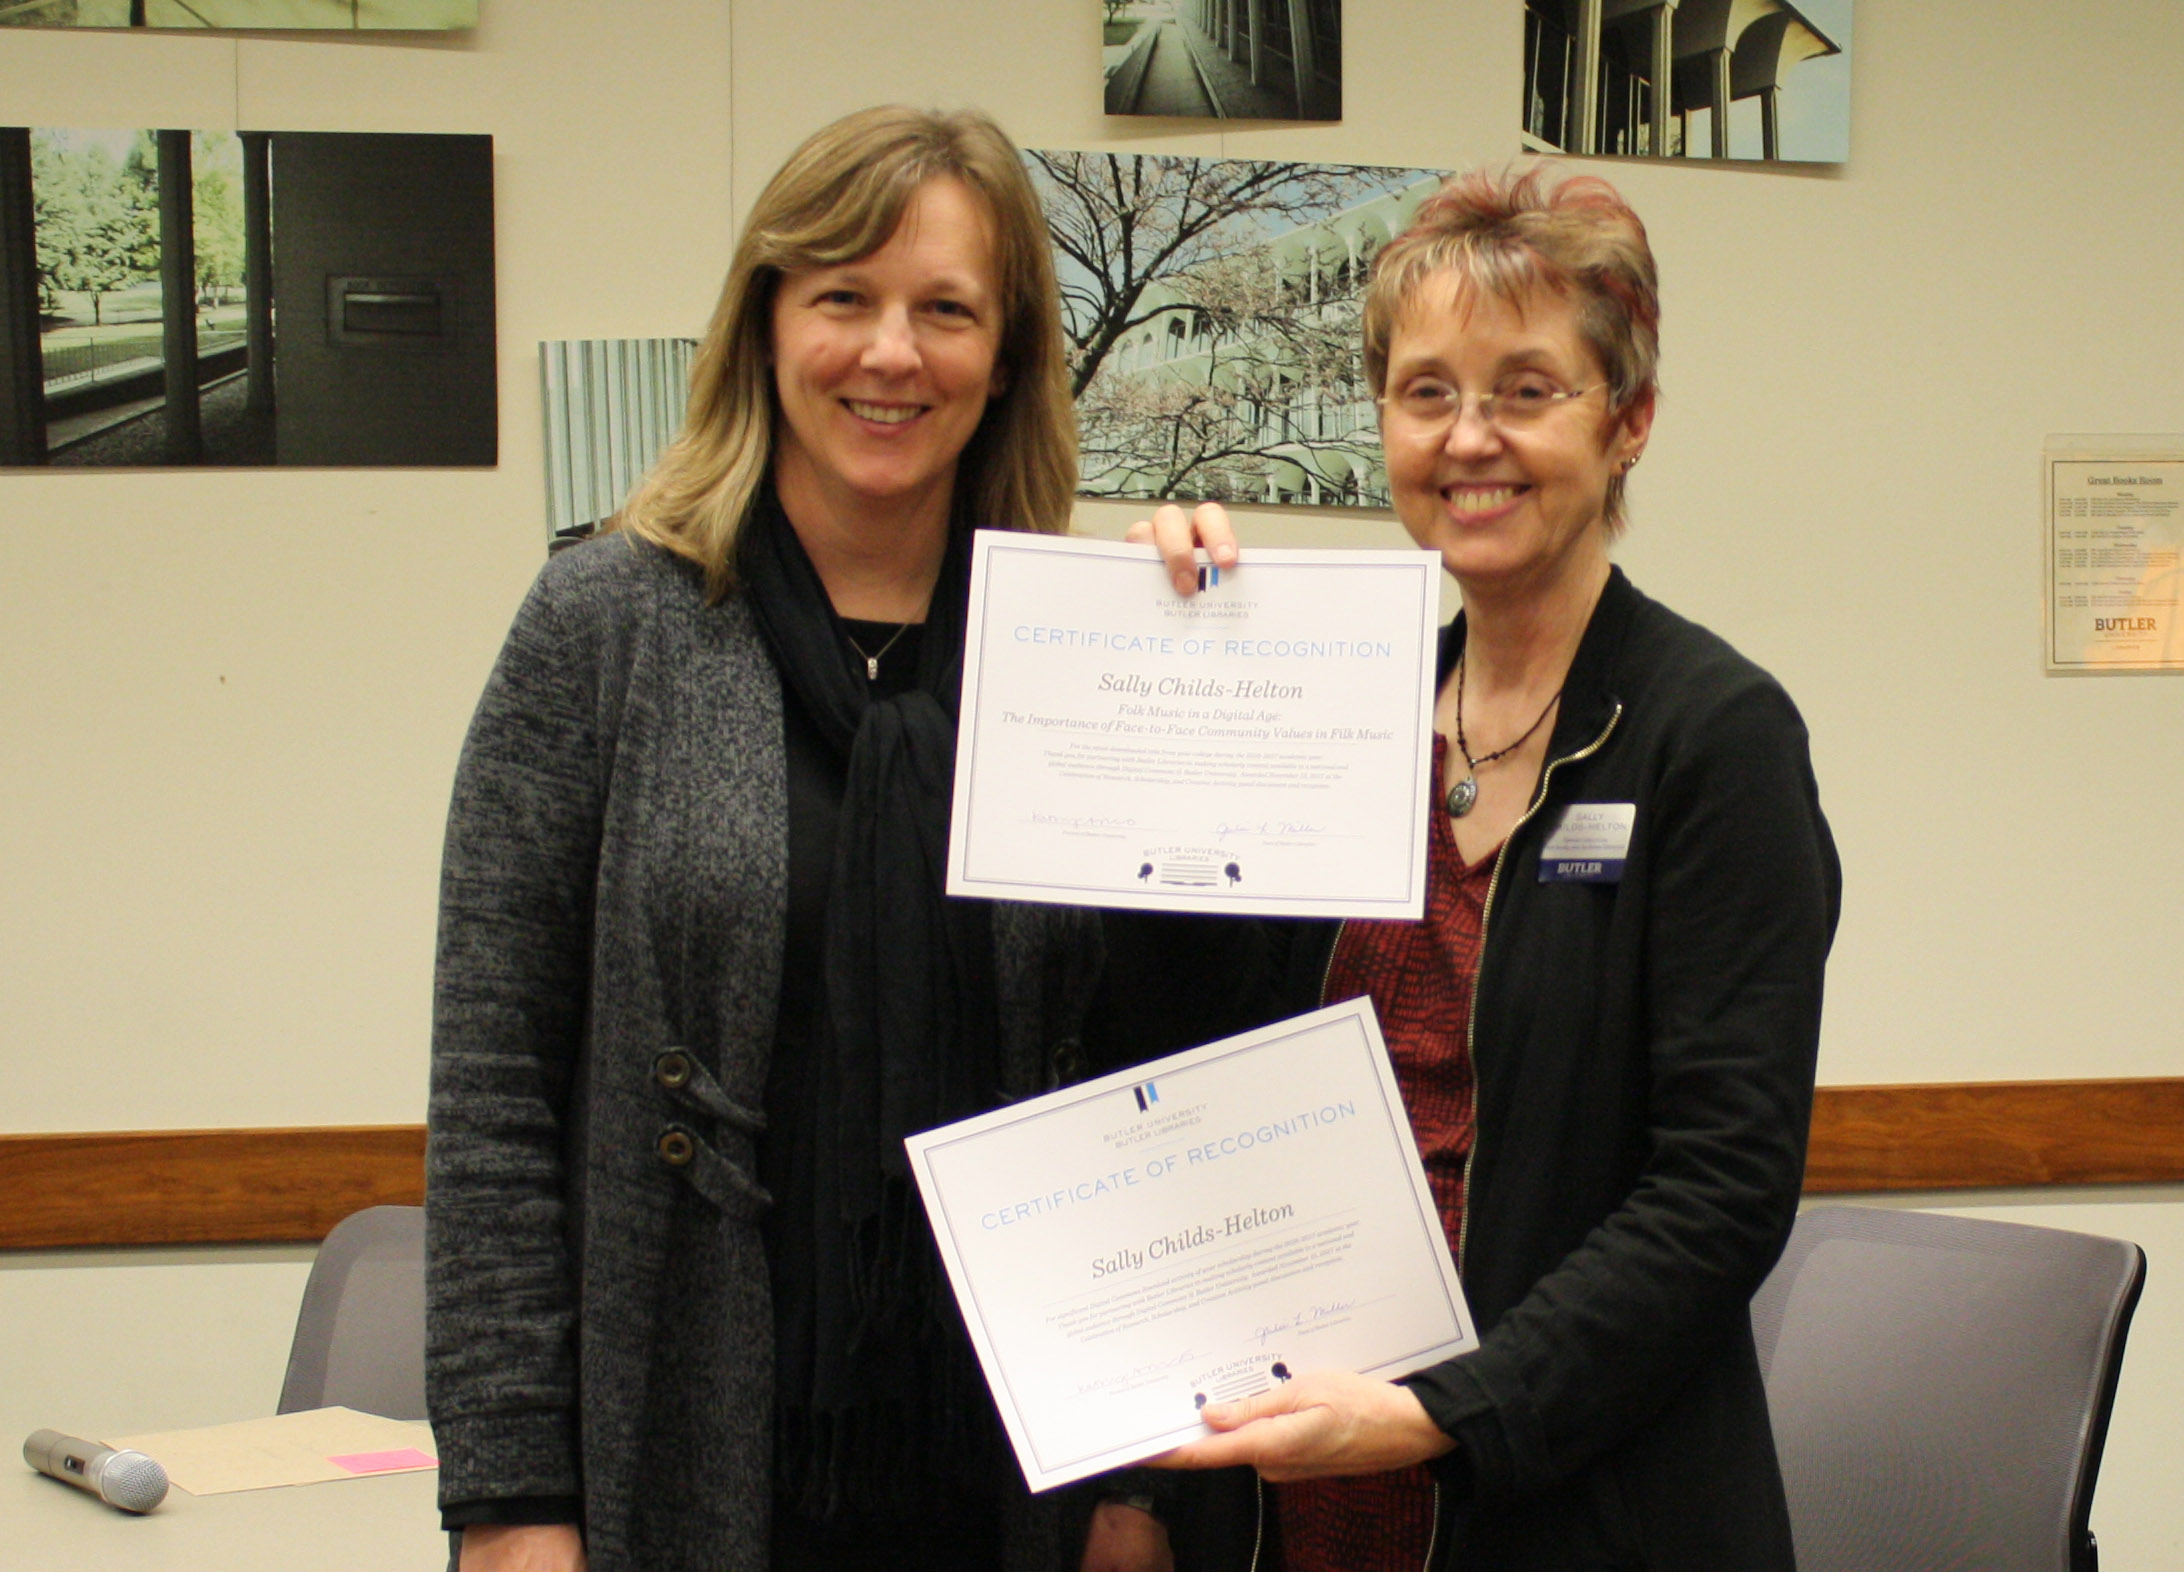 Celebration Certificate Recipients - Libraru faculty